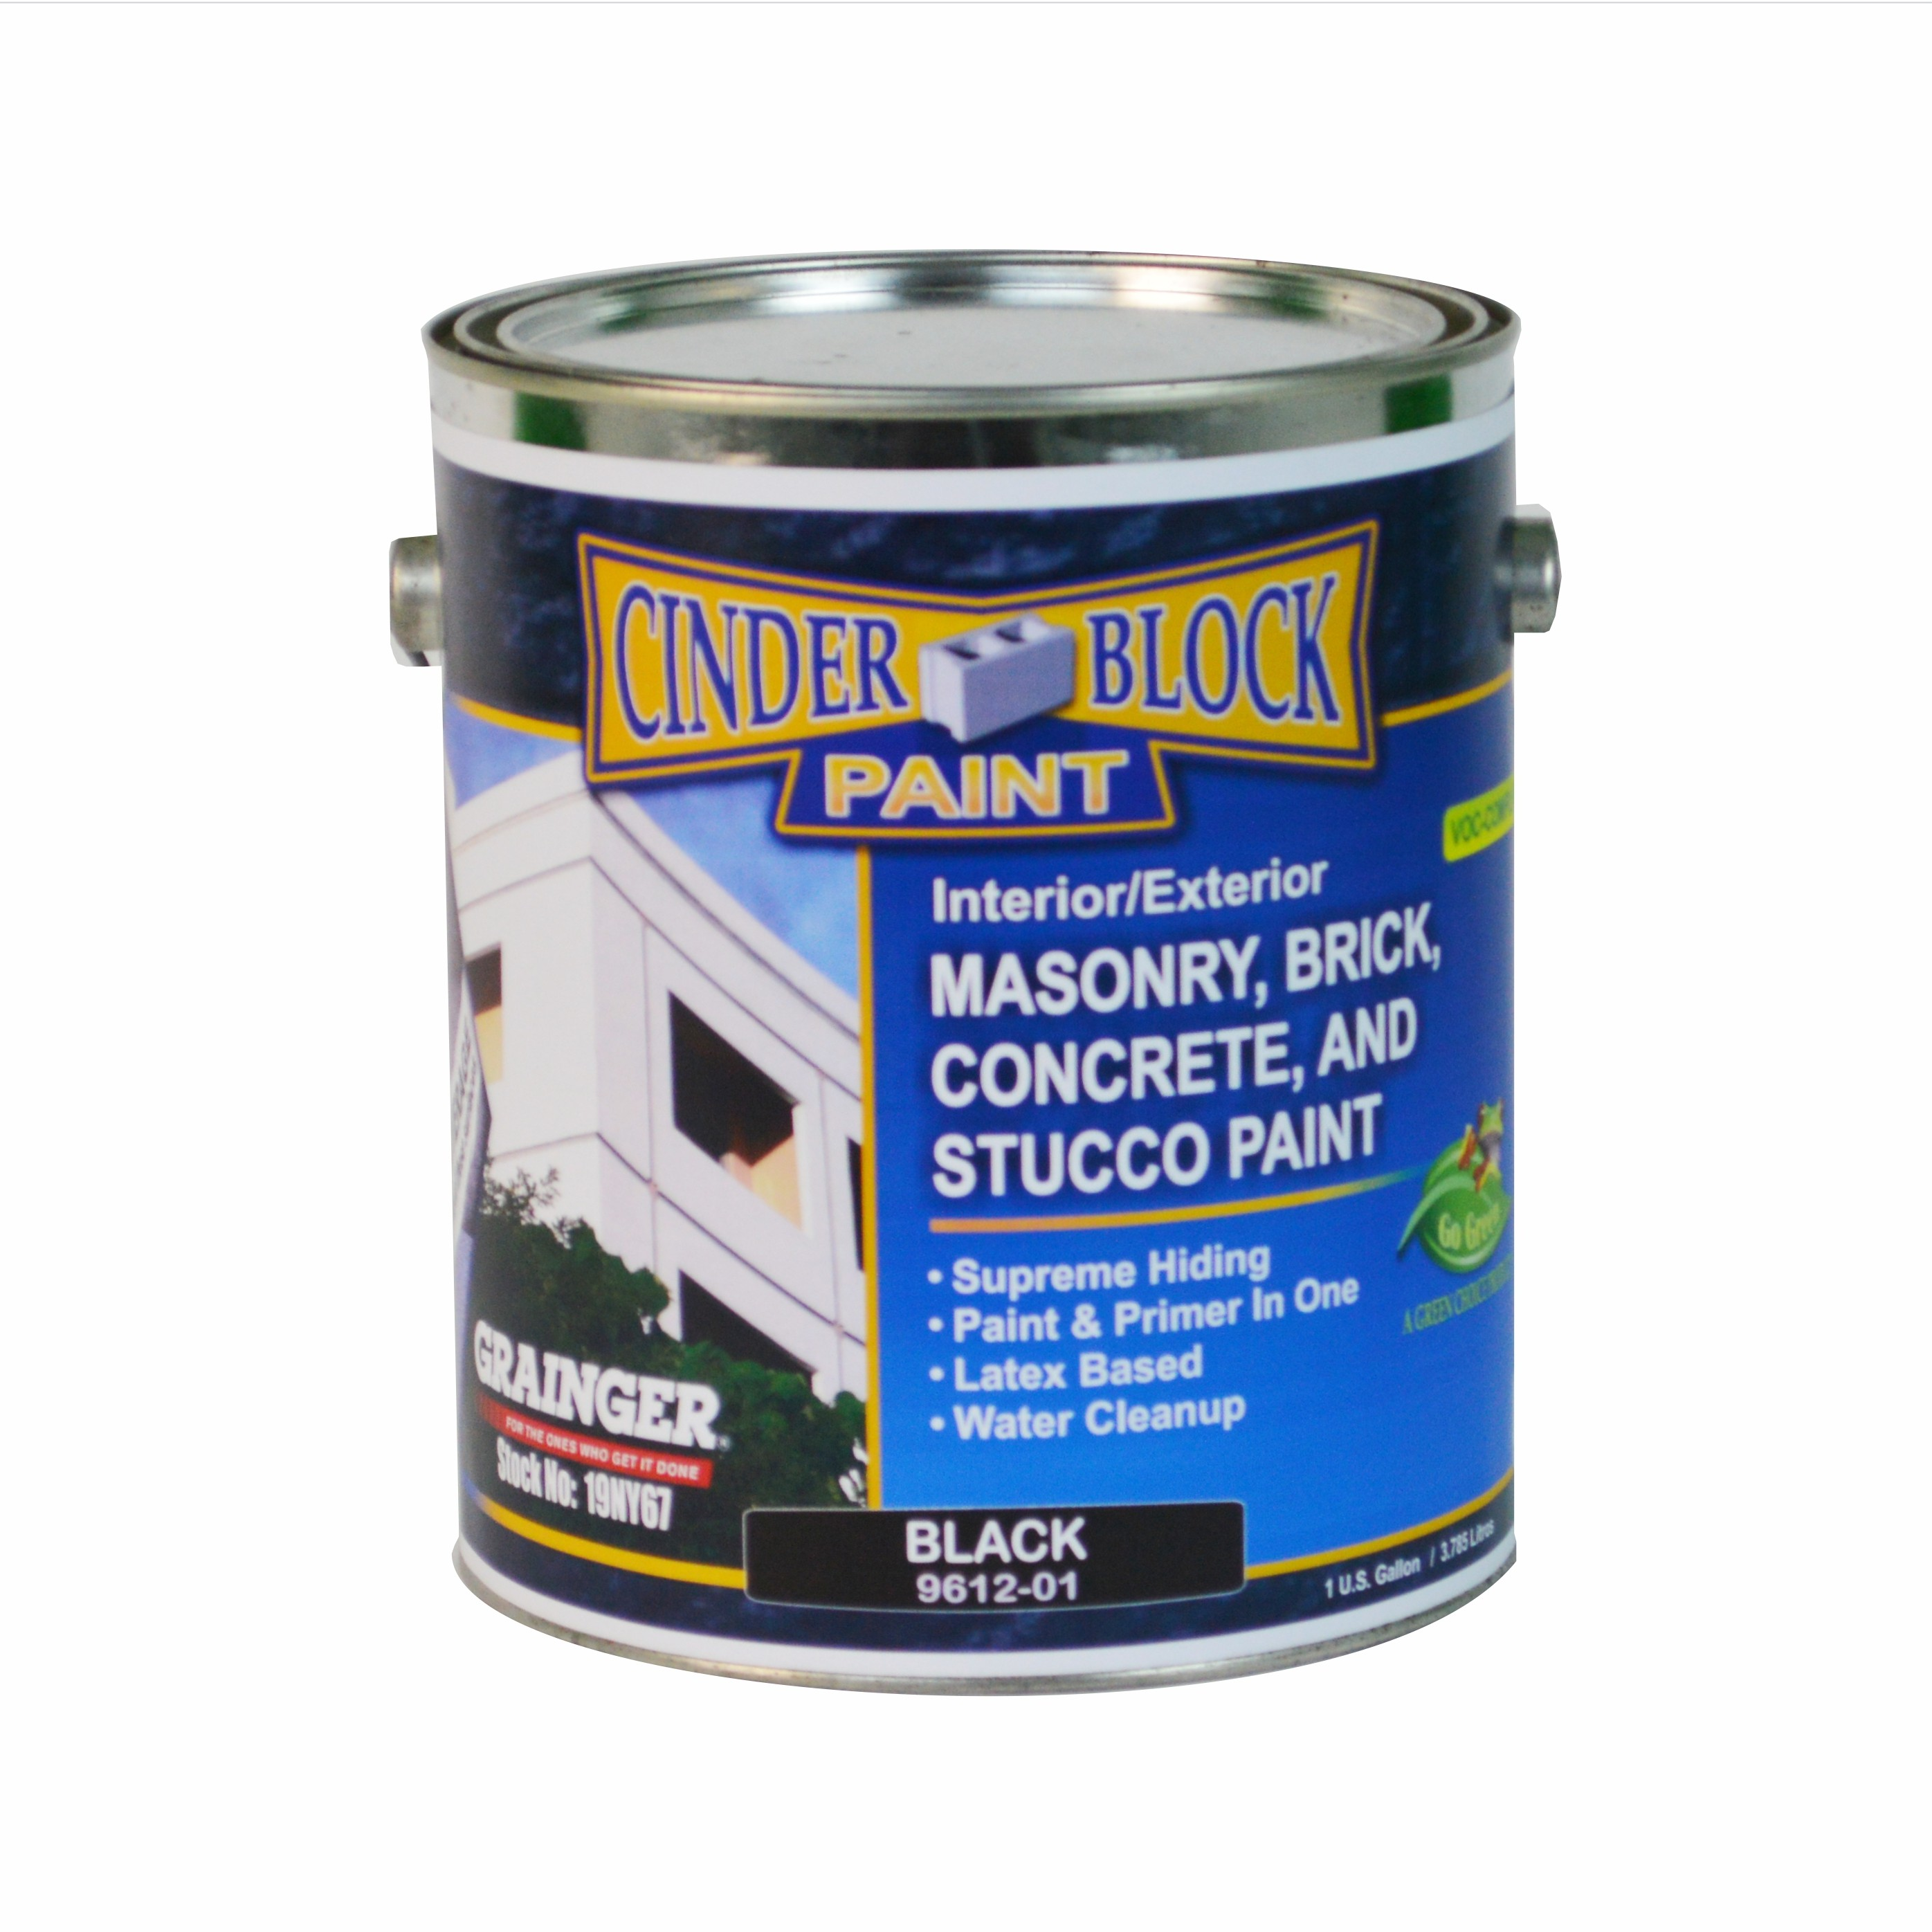 Rae Masonry Concrete Paint Water Based Latex Base Acrylic Rae Products And Chemicals